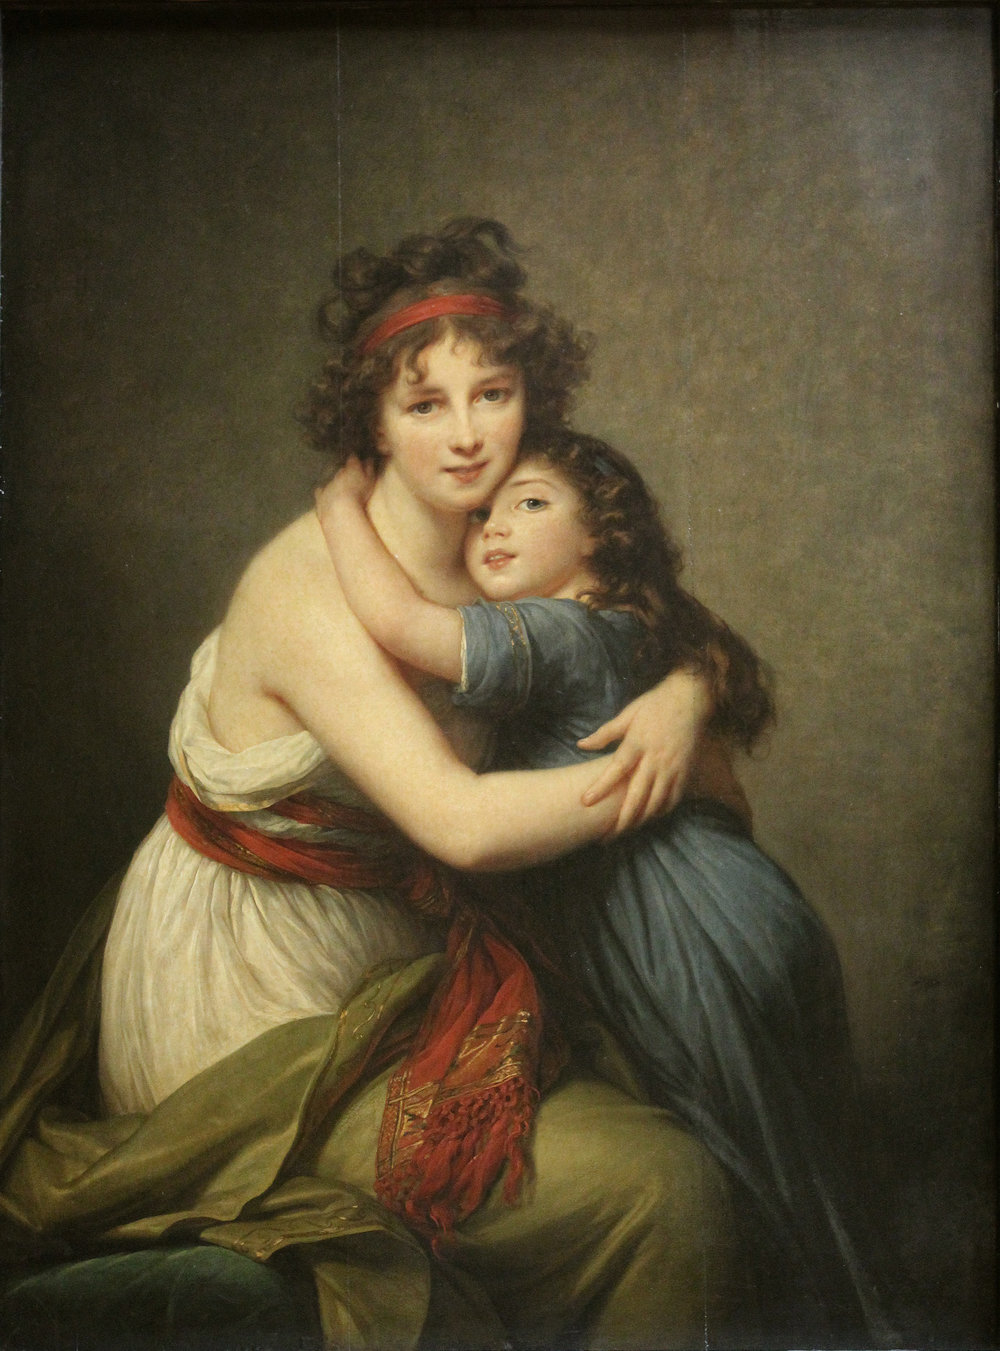 Elisabeth Vigée Lebrun, Self Portrait with Her Daughter, 1789, oil on canvas, Musée du Louvre